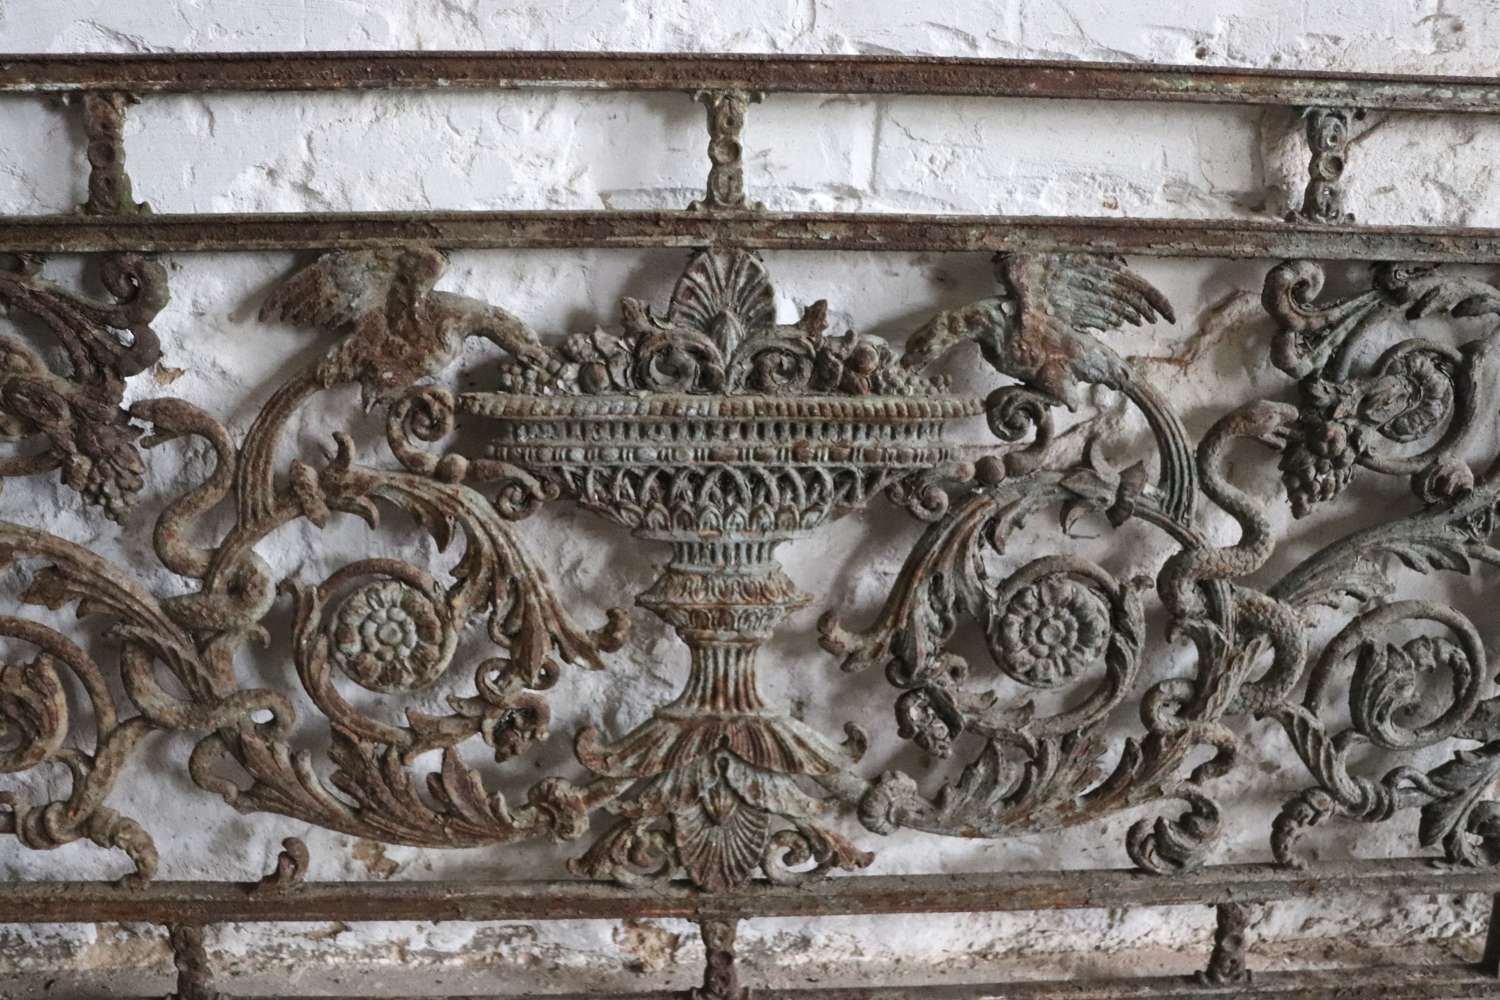 19th century French grill